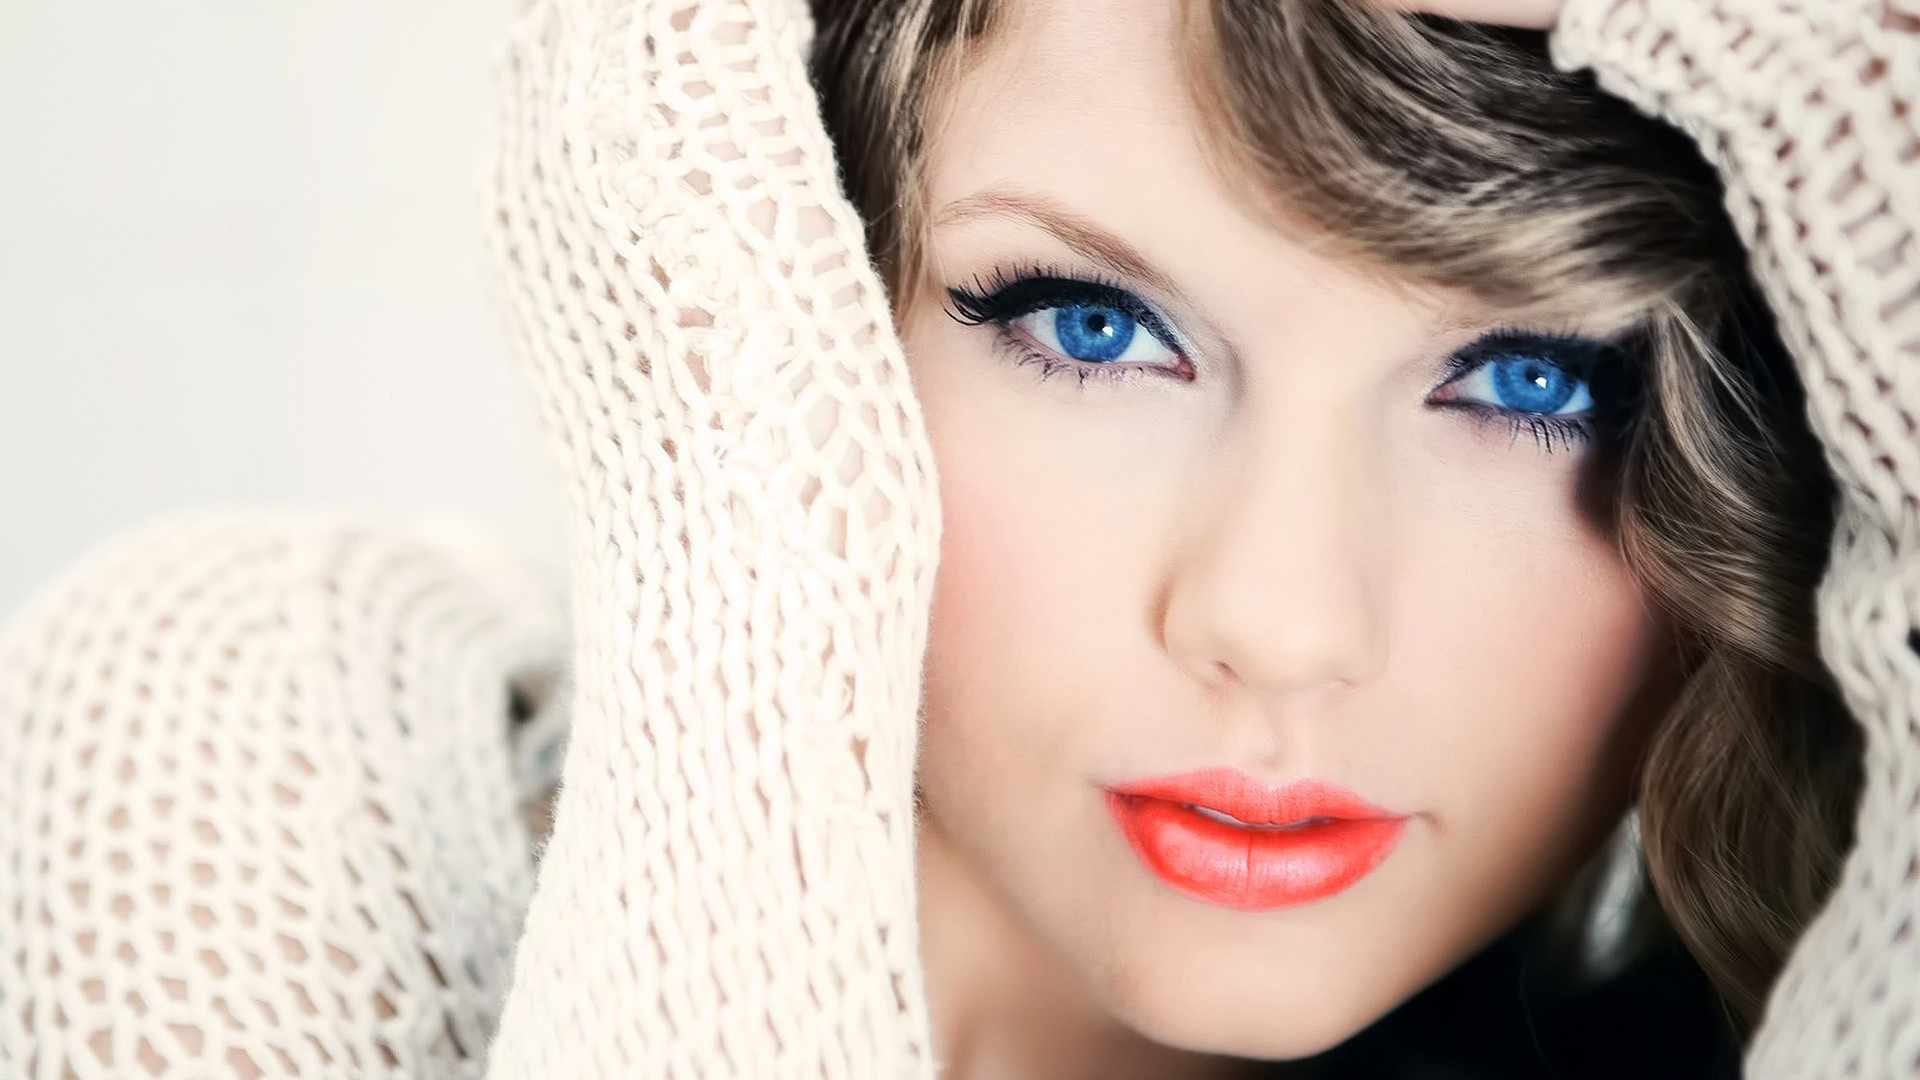 Country Girl Quotes Wallpapers Taylor Swift Wallpaper Hd Downloadwallpaper Org